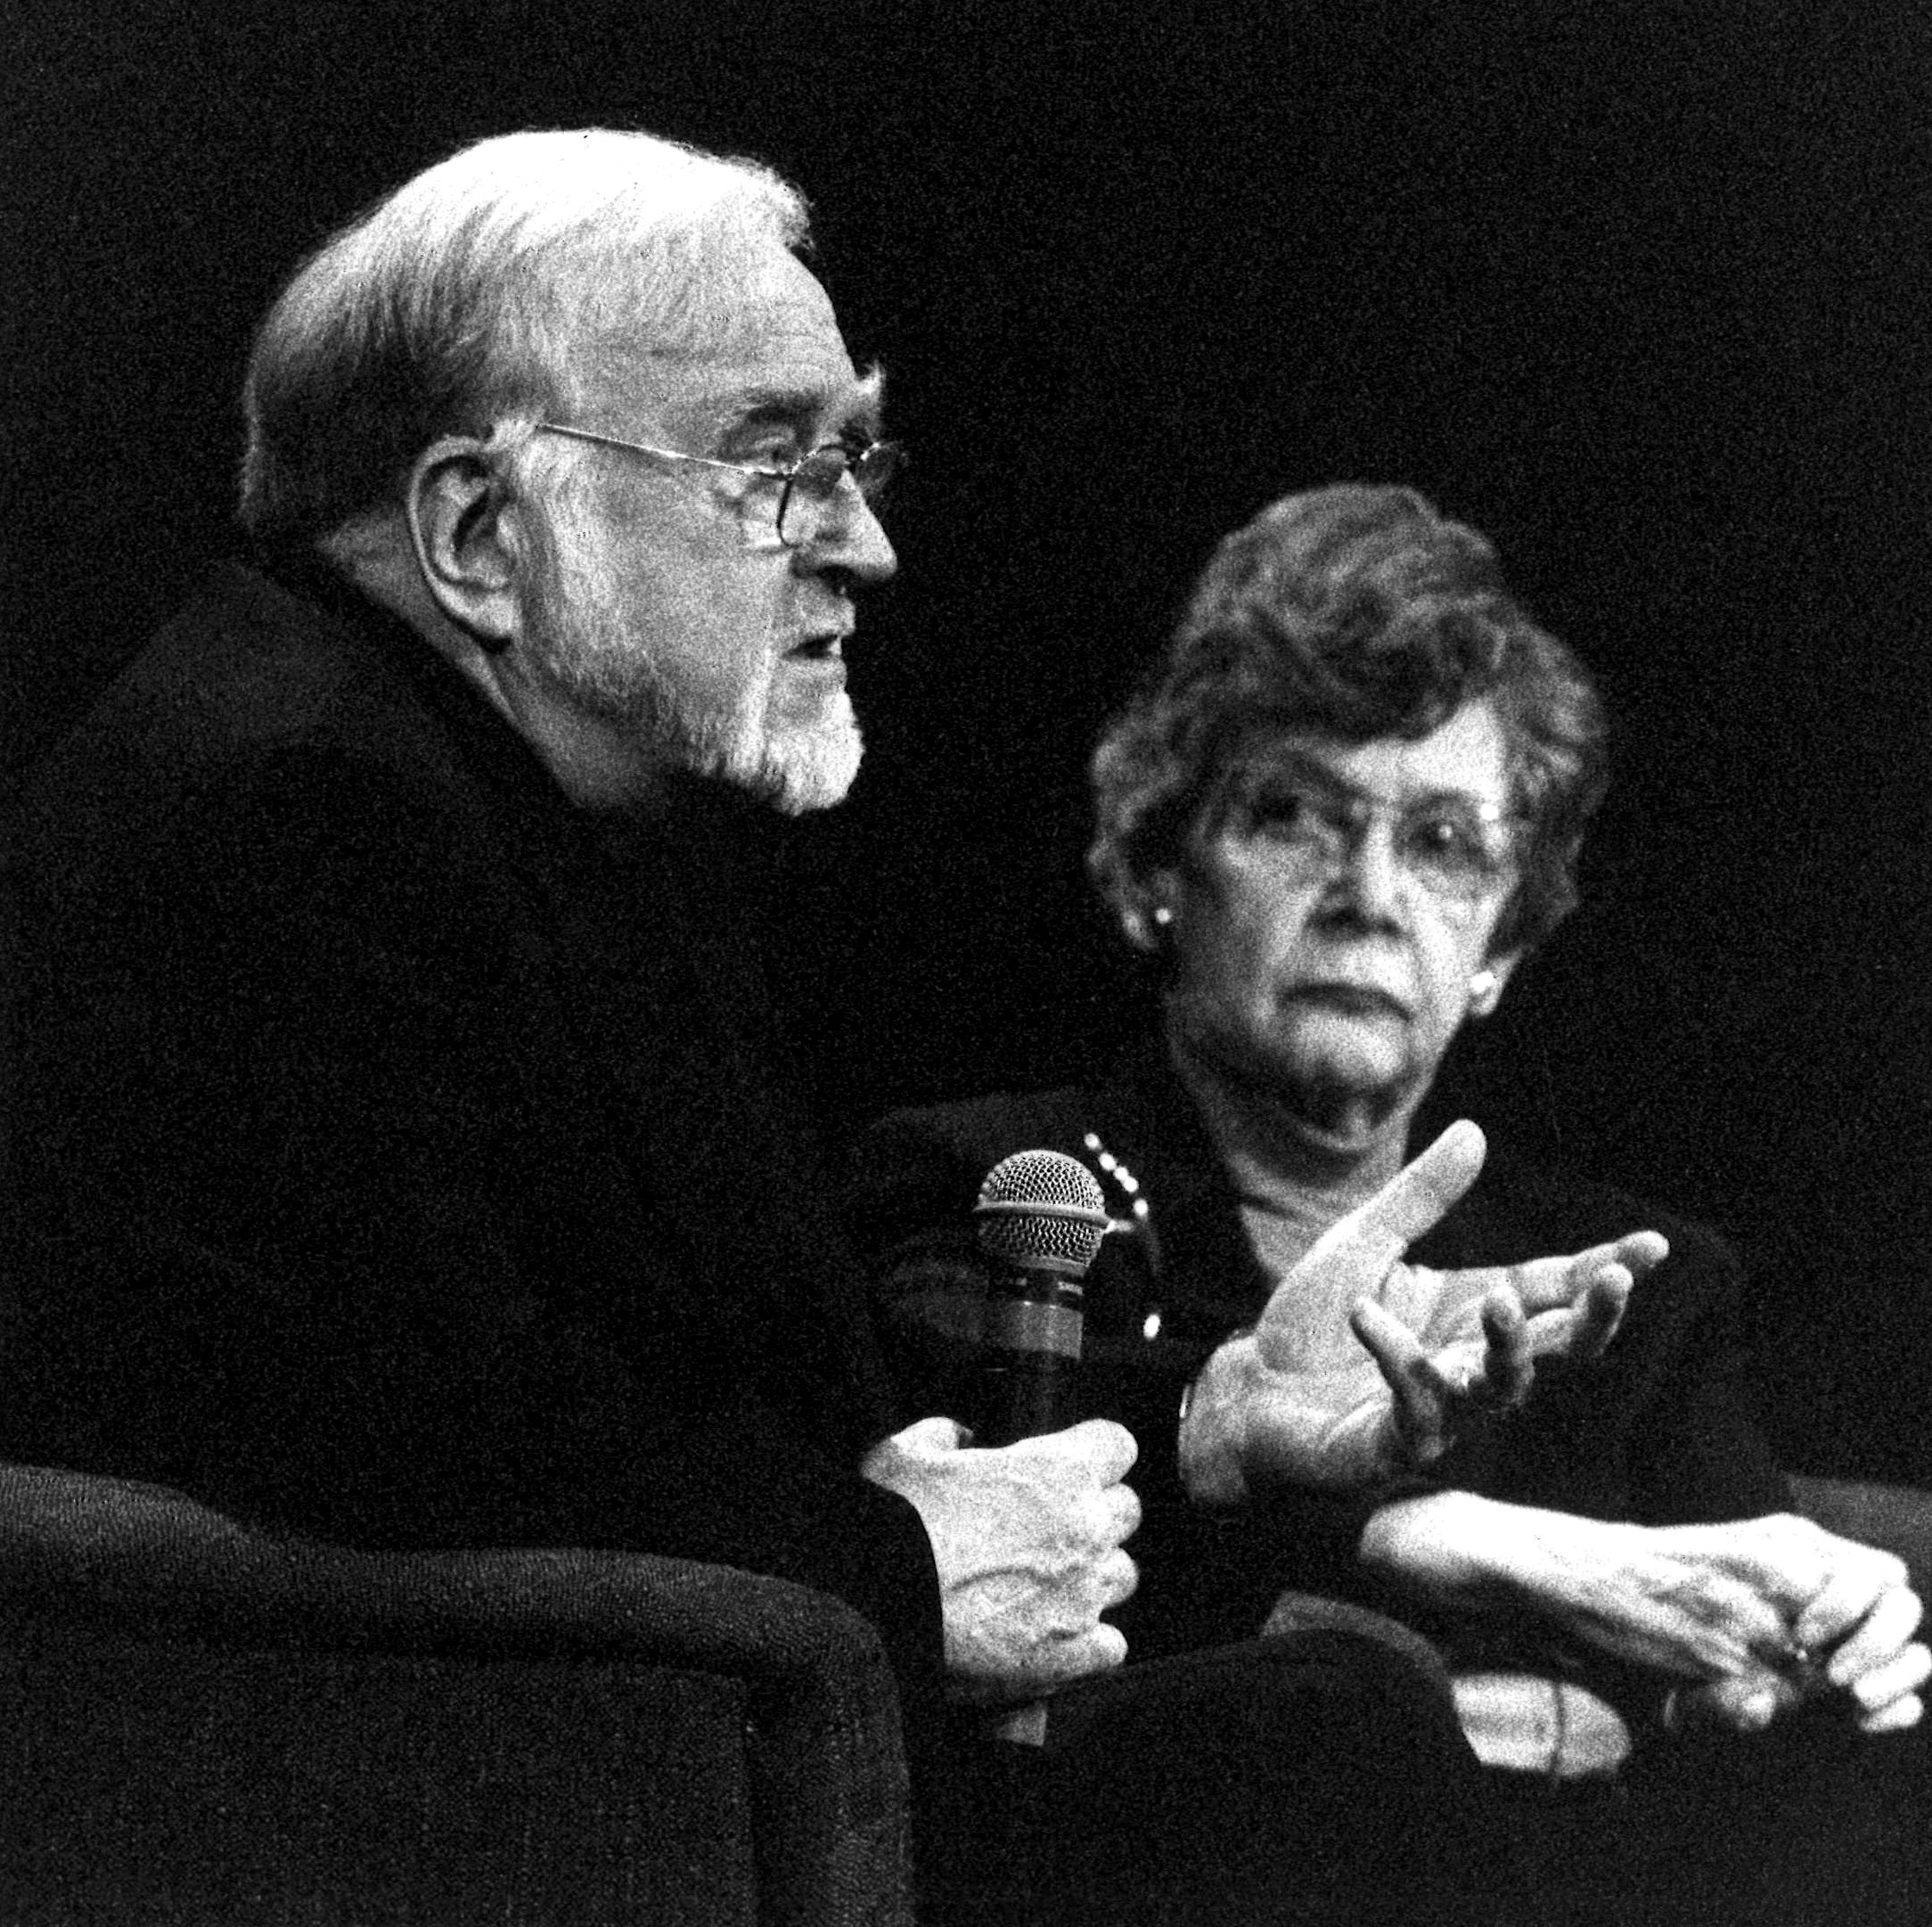 Mihaly Csikszentmihalyi and a conference panelistat the Not Just Any Body Conference in 1999.